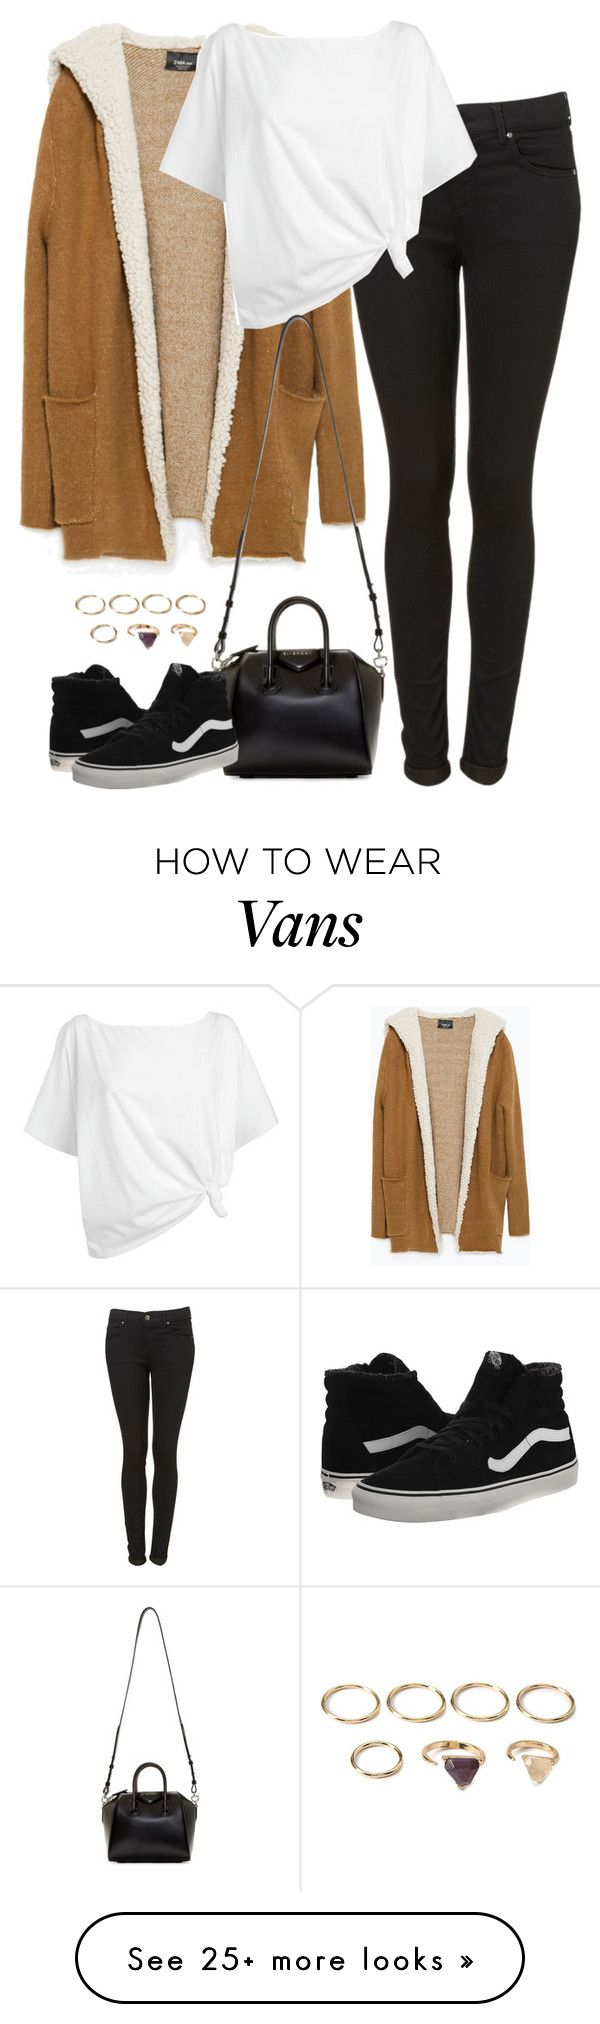 """""""Untitled #4945"""" by eleanorsclosettt on Polyvore featuring Zara, Red Herring, Givenchy, Vans and Forever 21"""